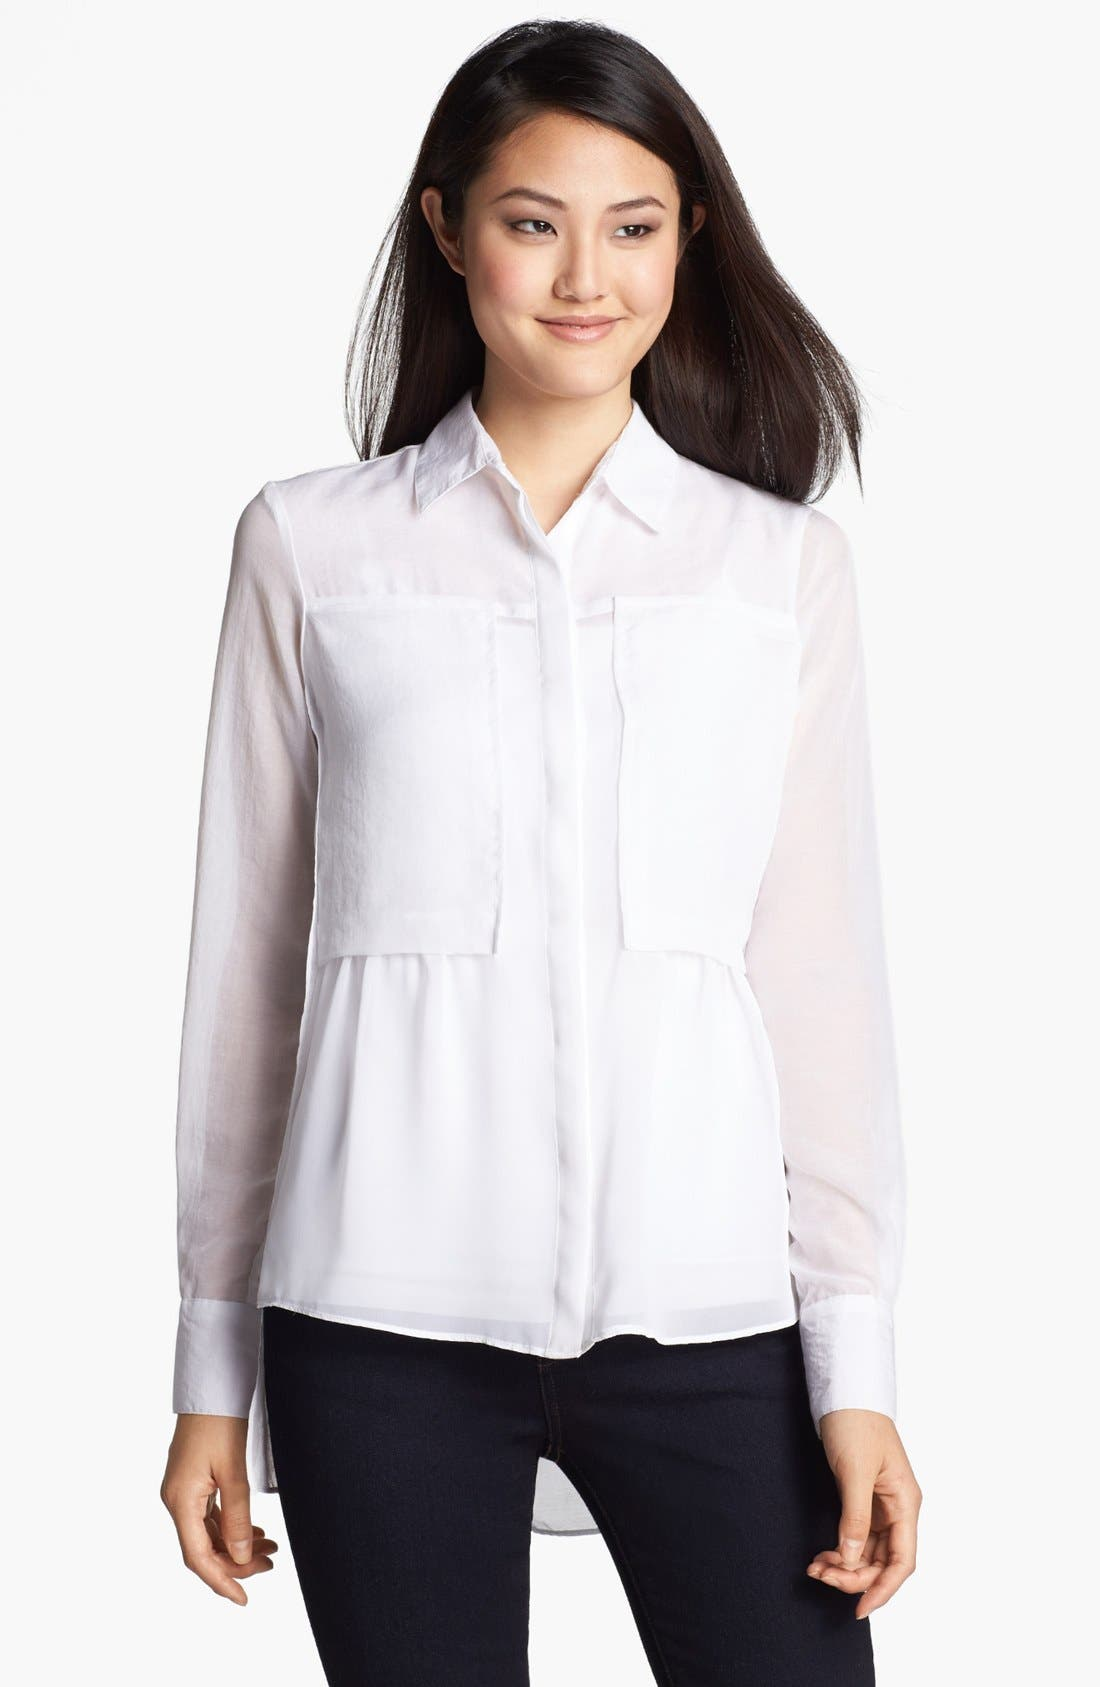 Alternate Image 1 Selected - Kenneth Cole New York 'Livana' Shirt